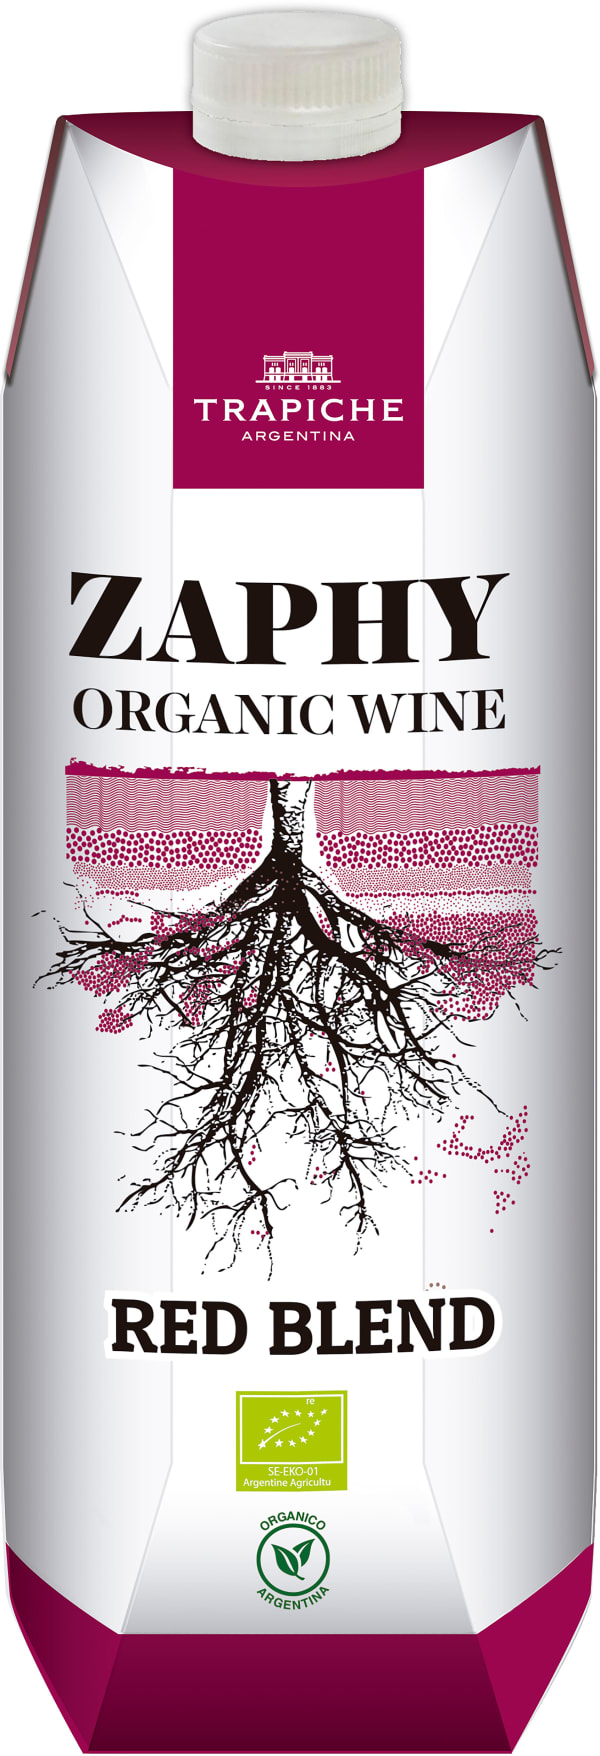 Trapiche Zaphy Organic Red Blend 2019 carton package